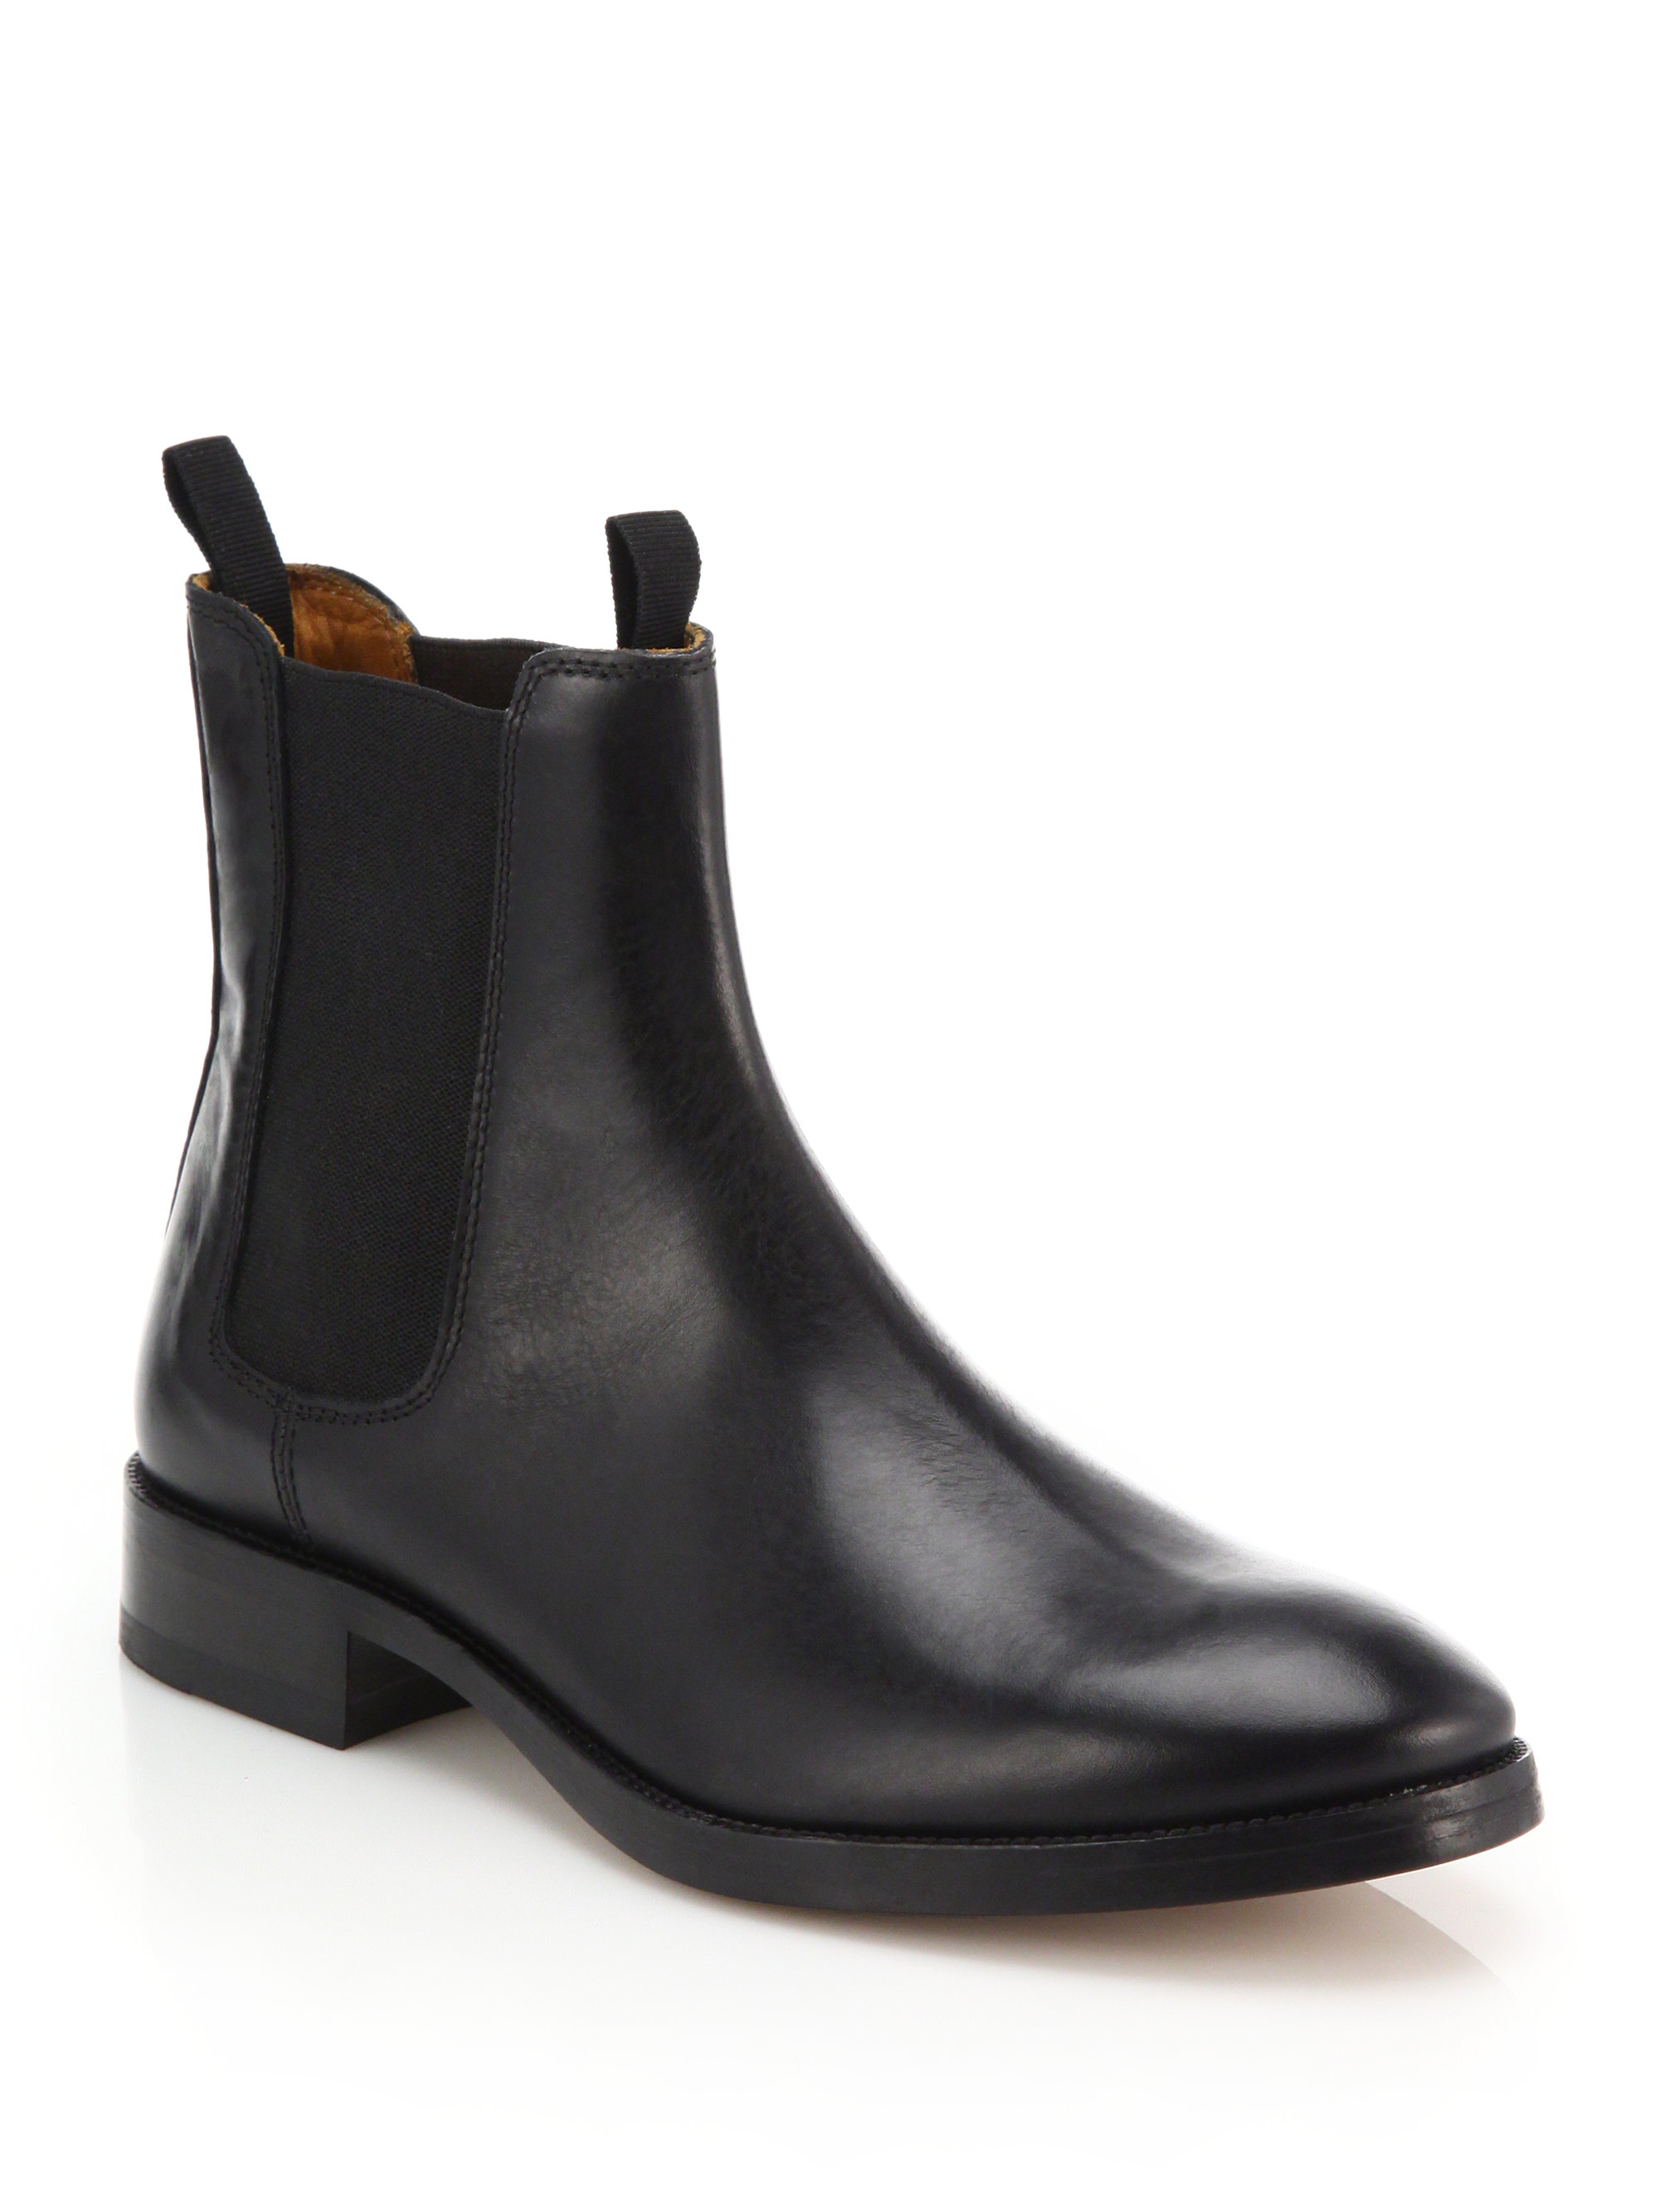 New Hudson Women39s Wistow Chelsea Boots  Black Leather